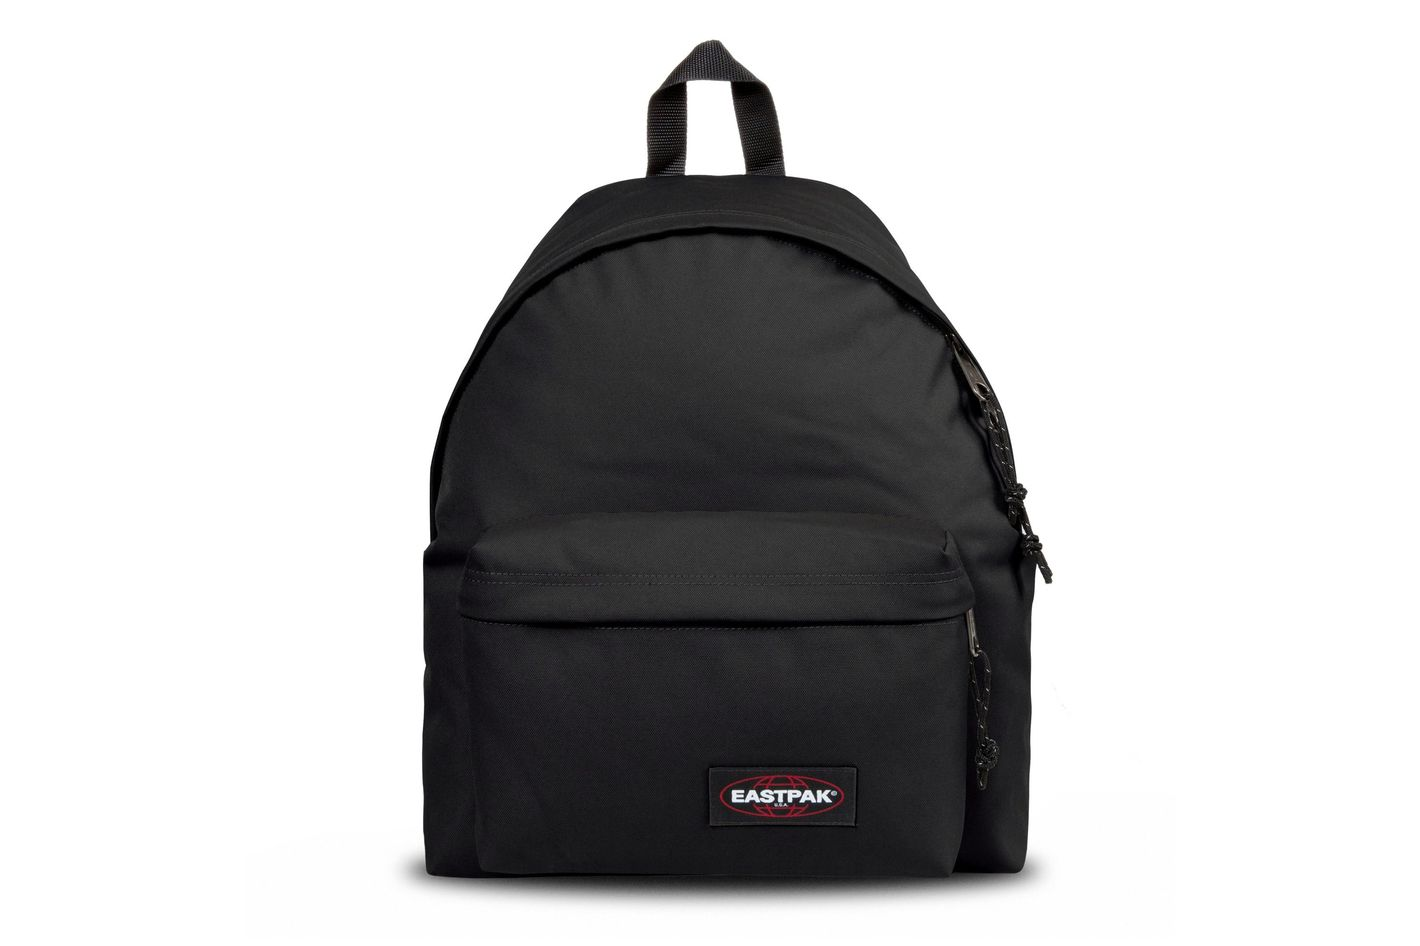 eastpack backpack